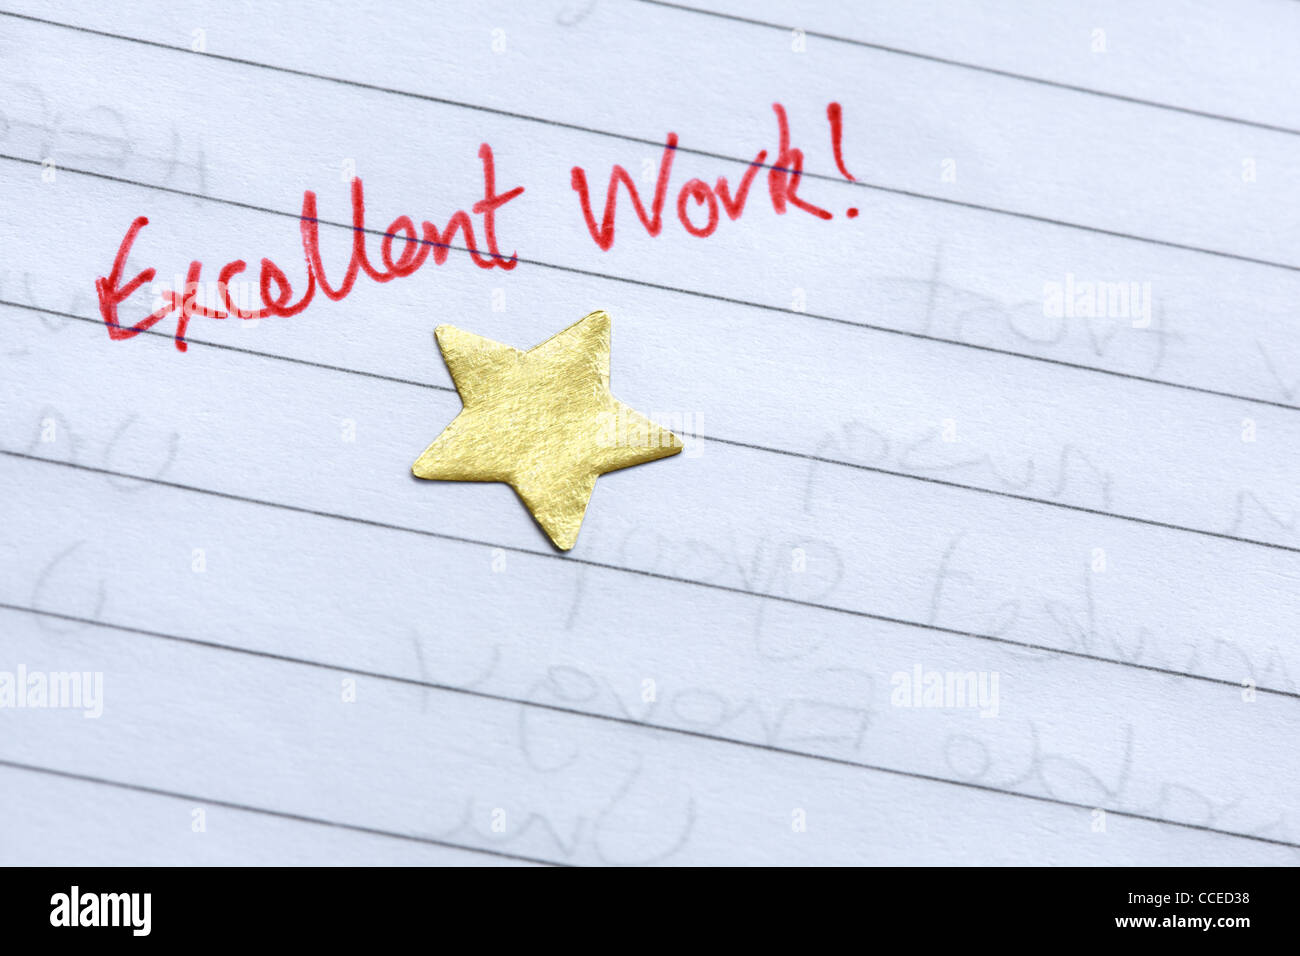 Gold star award - Stock Image